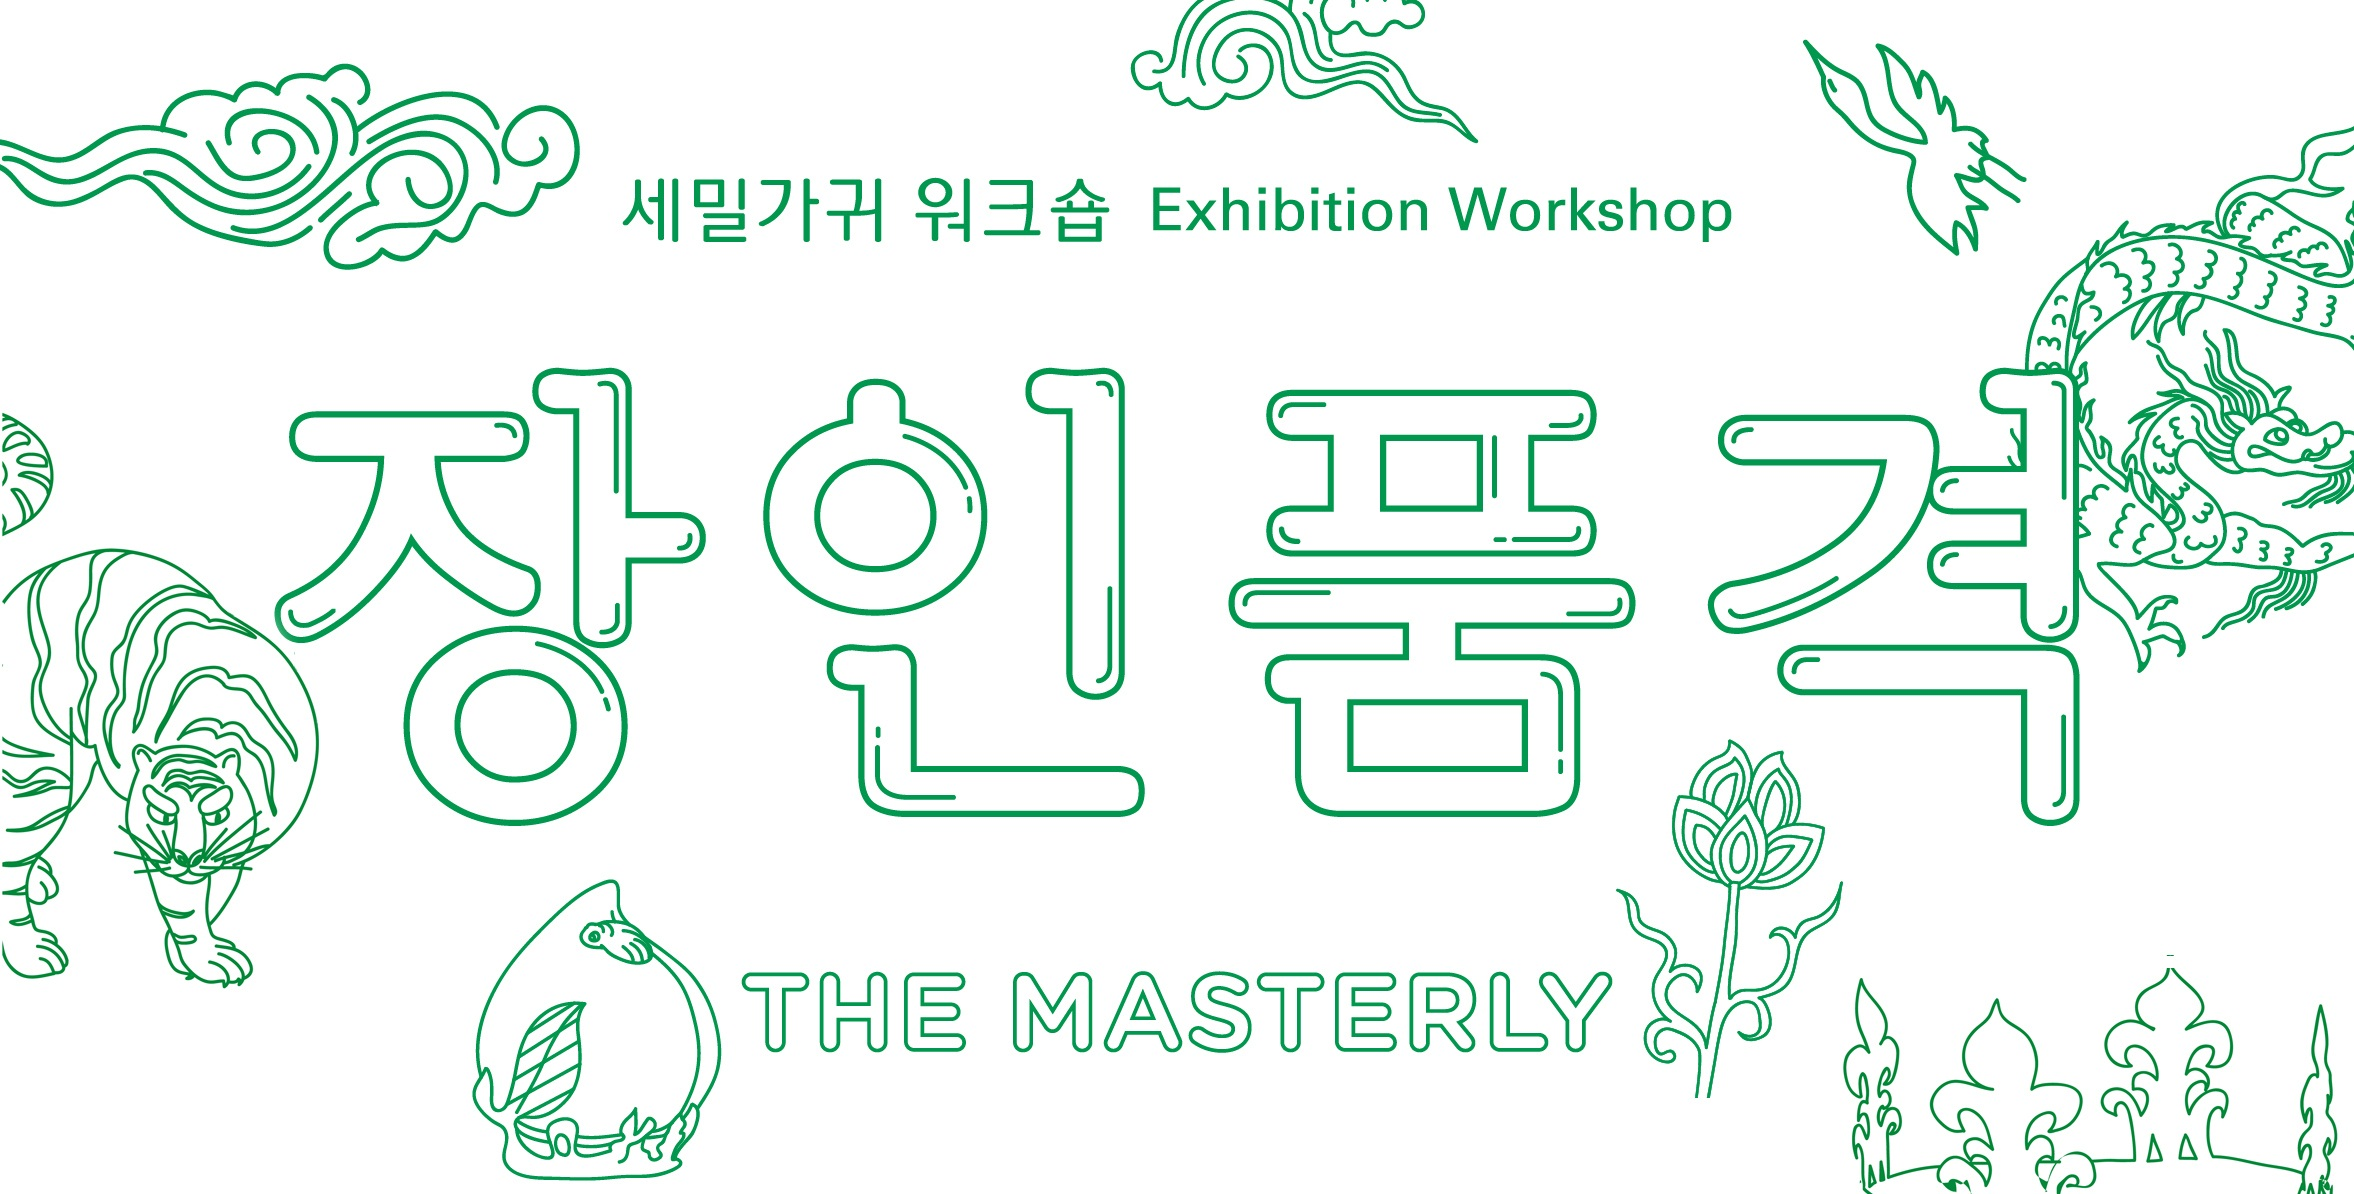 Exhibition Workshop THE MASTERLY